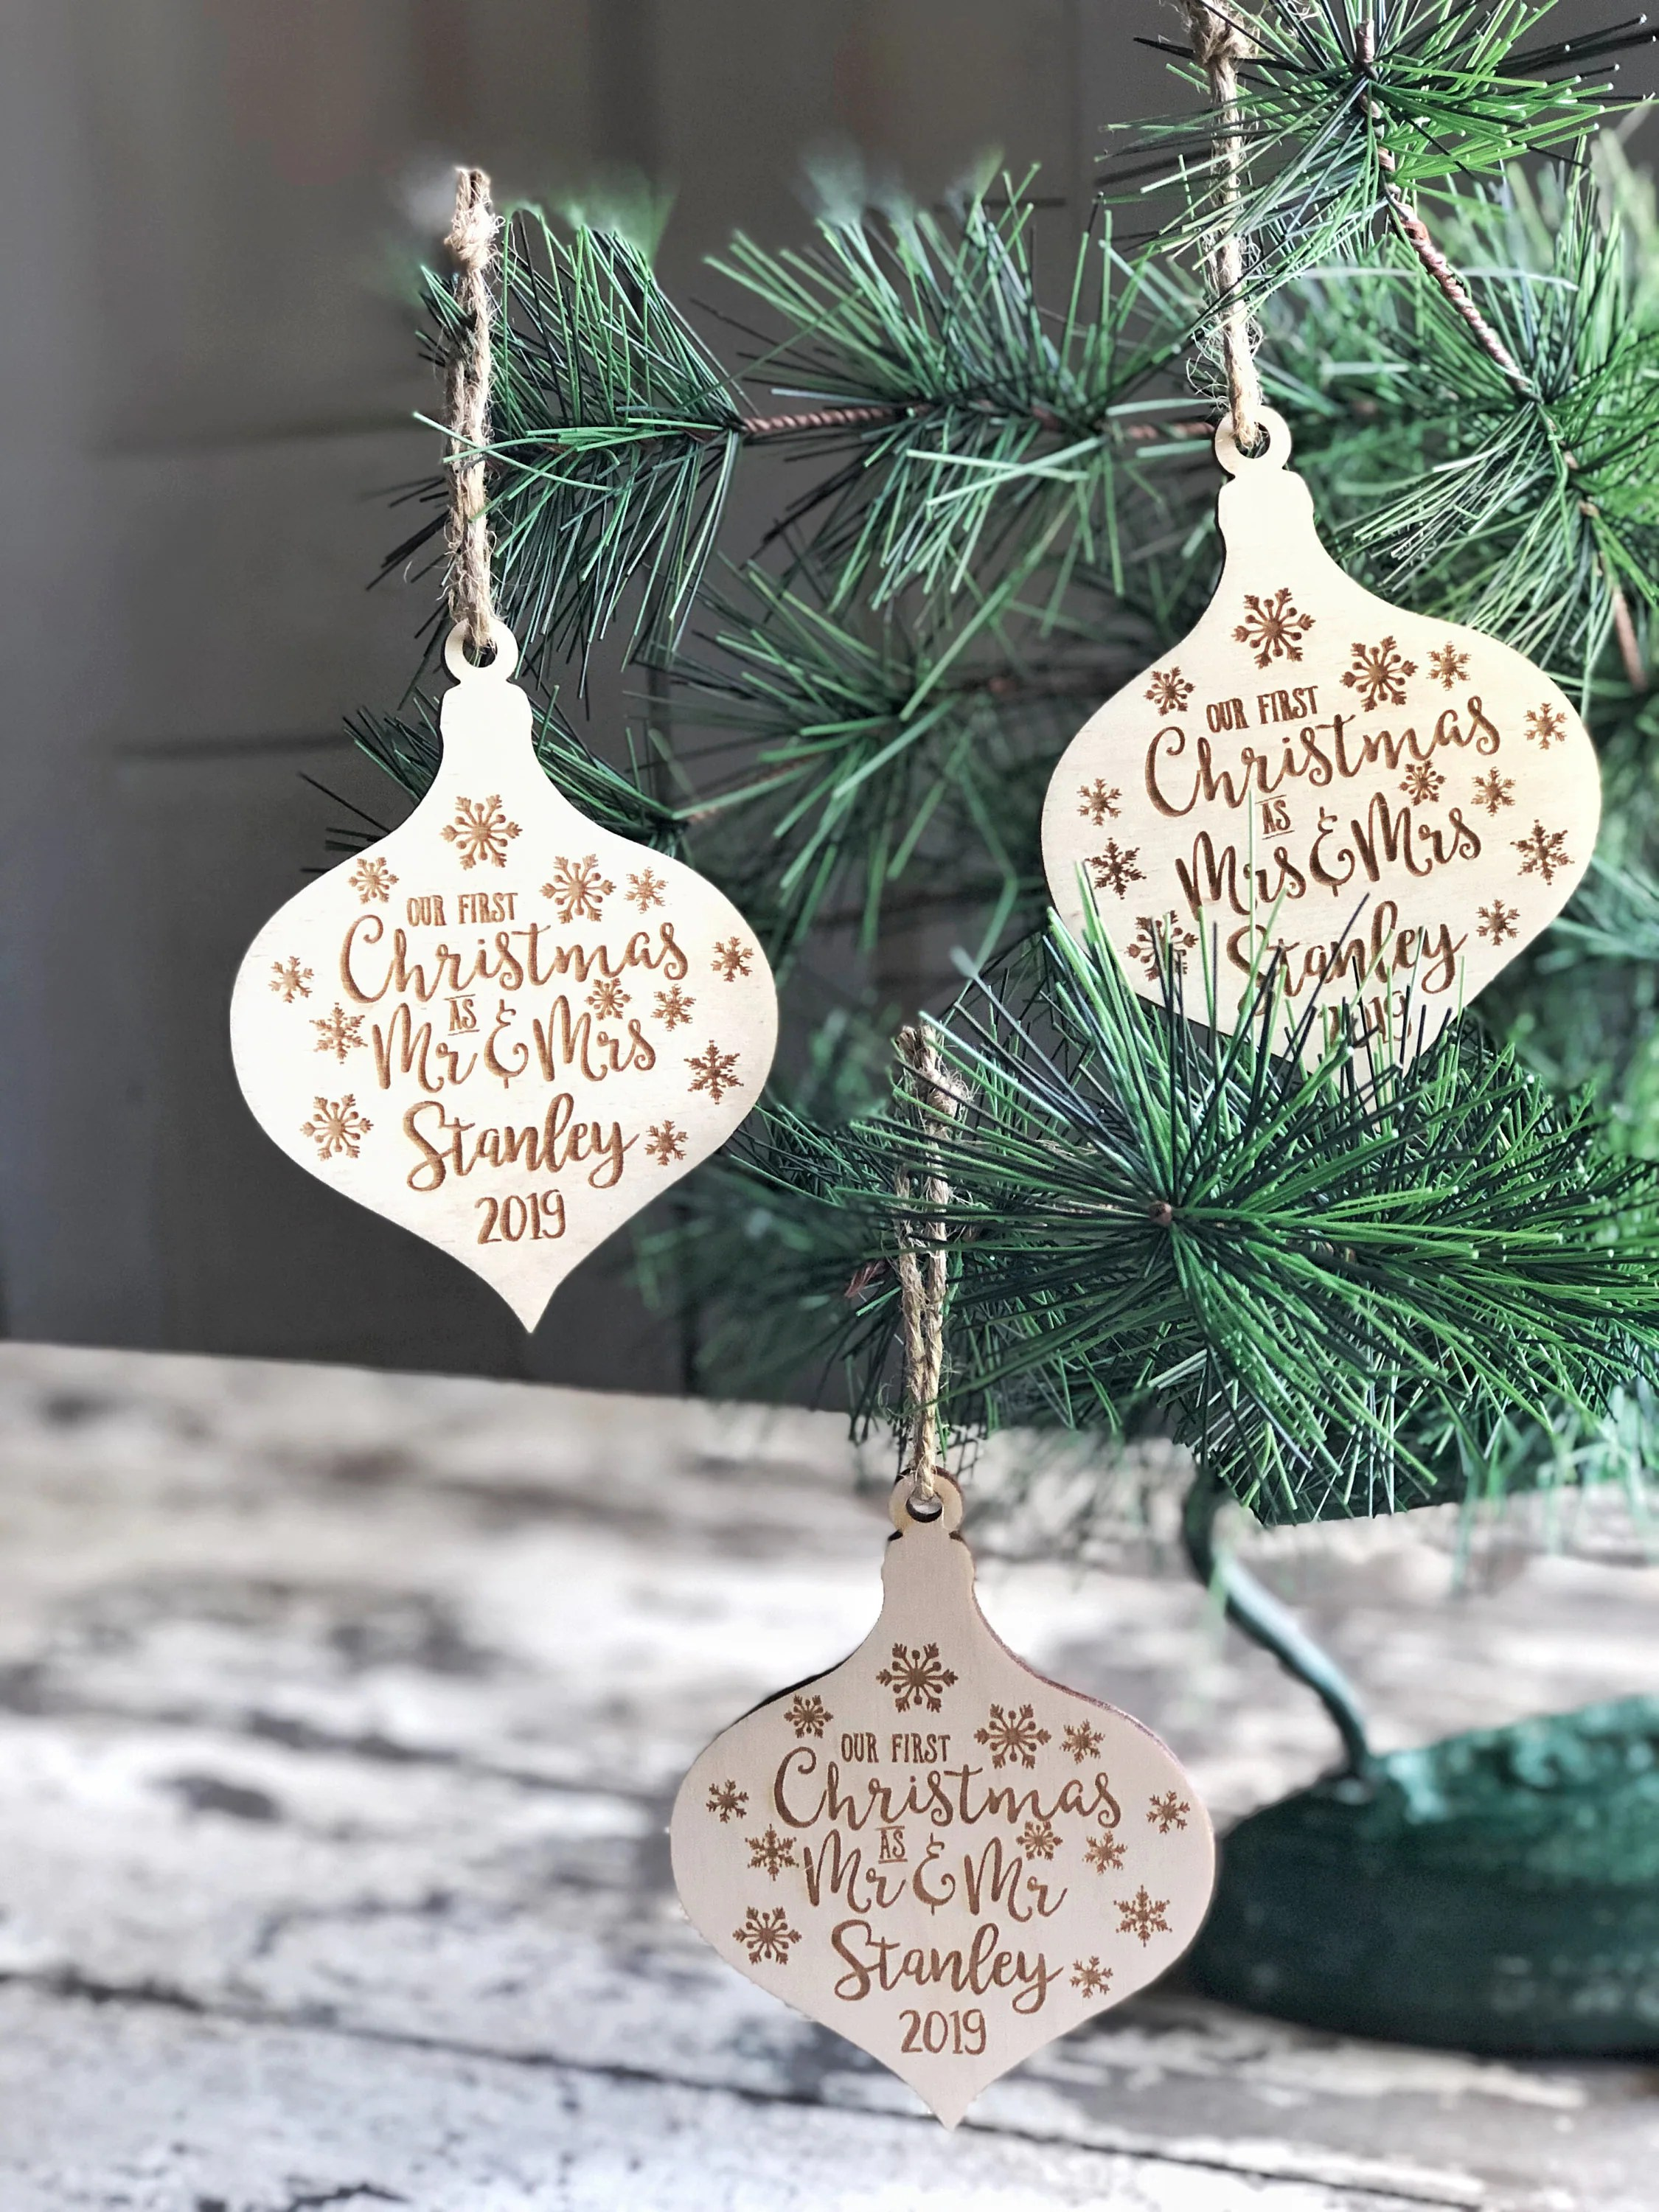 Our First Christmas Ornament 2019